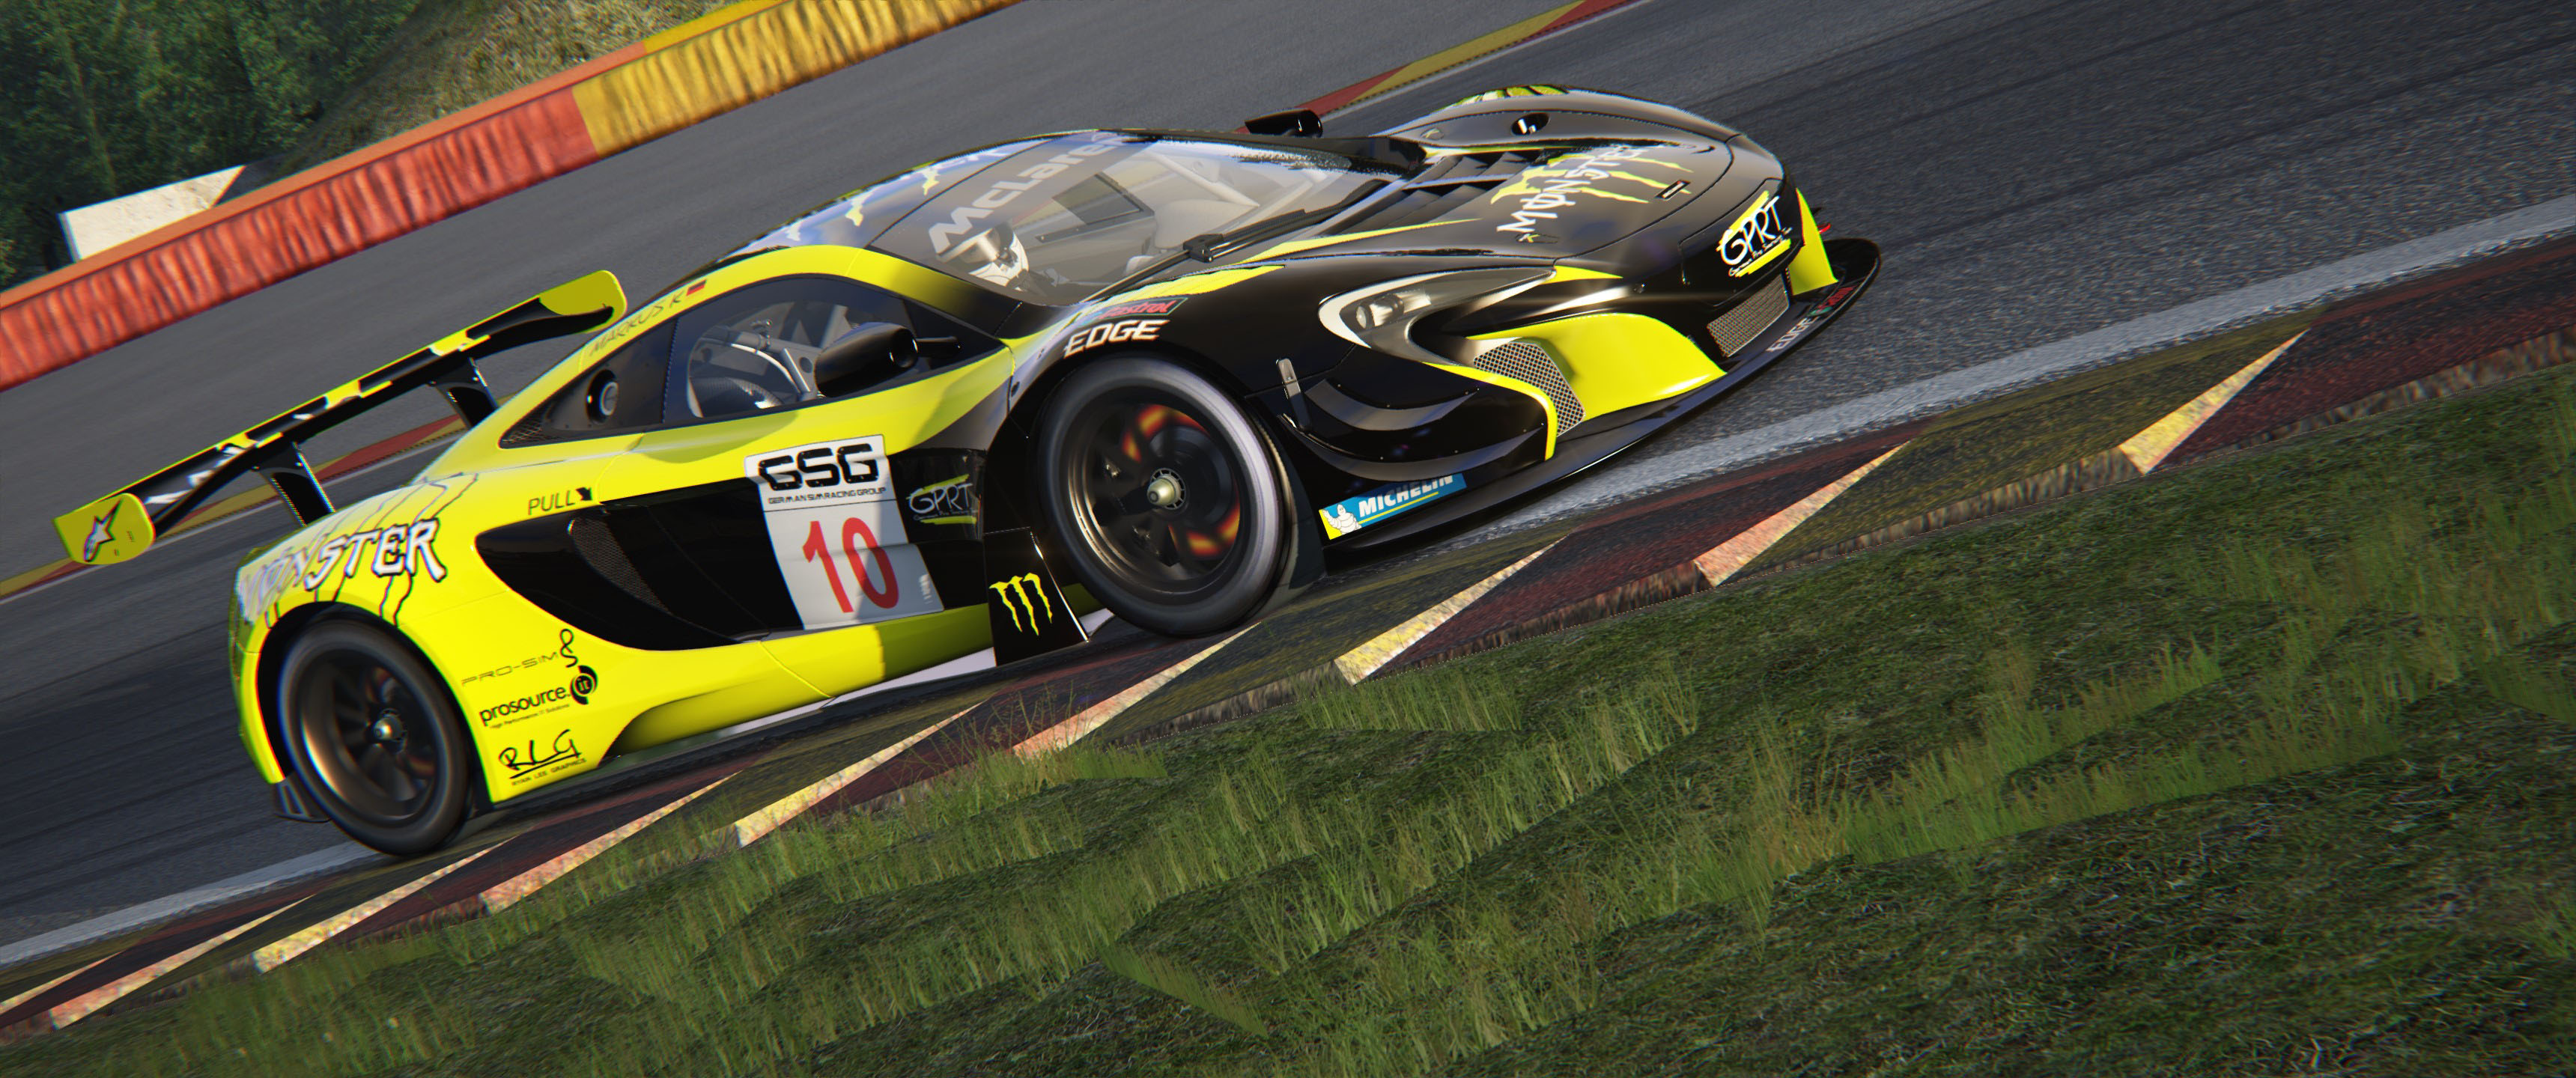 Screenshot_ks_mclaren_650_gt3_spa_15-3-116-18-50-20.jpg